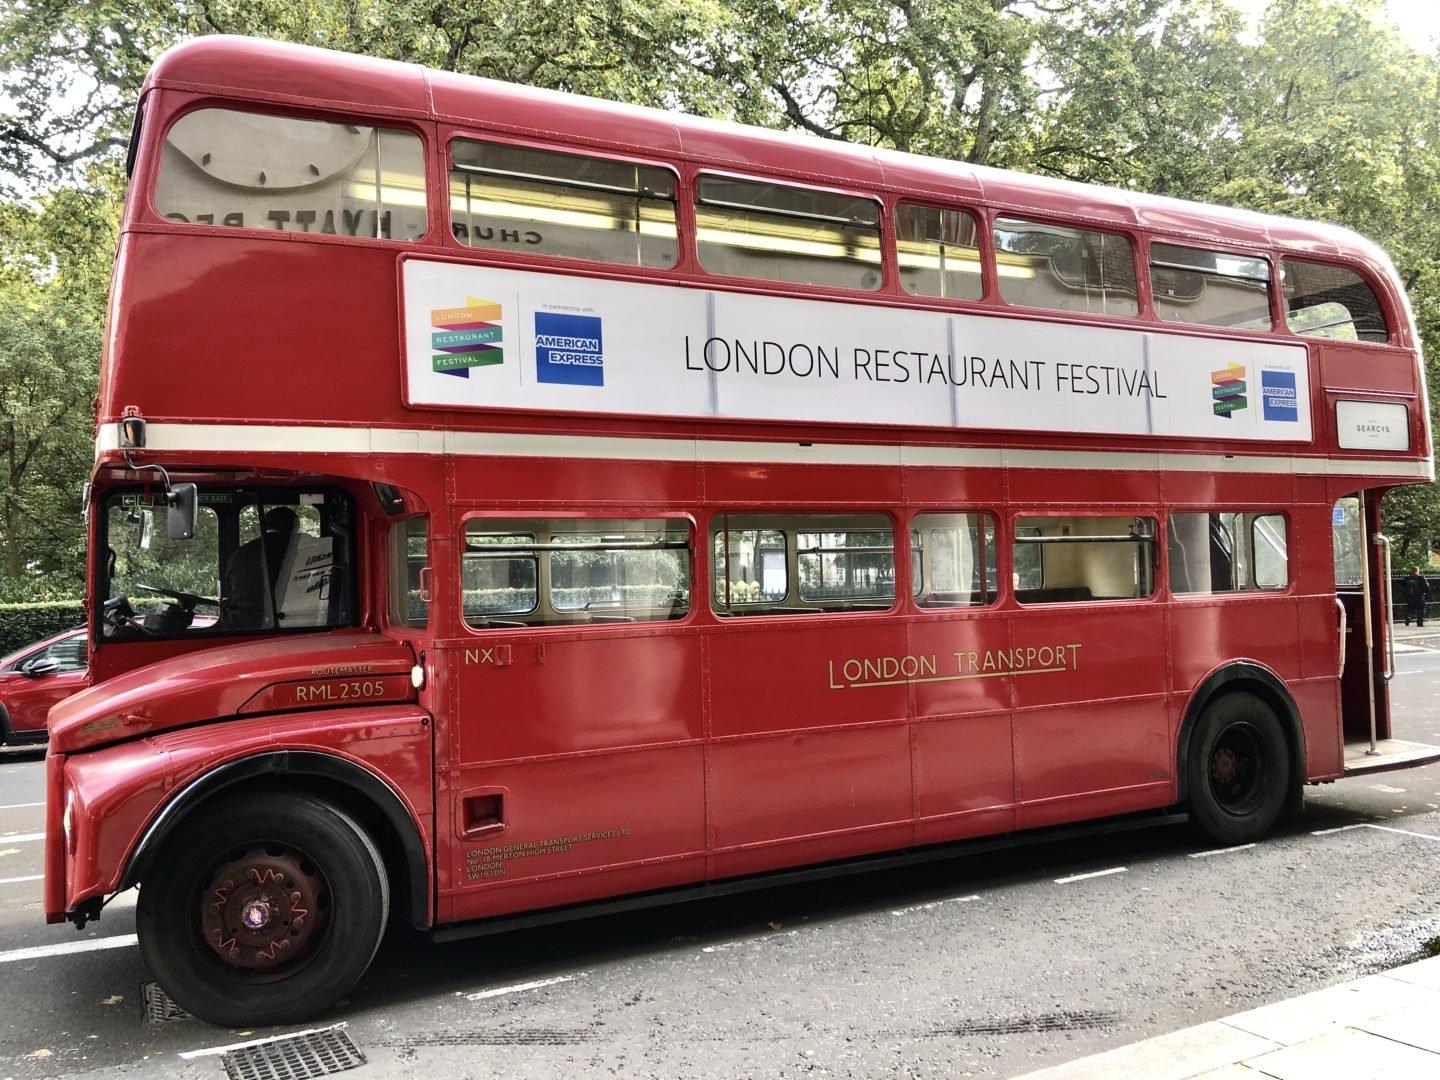 London restaurant festival route master bus